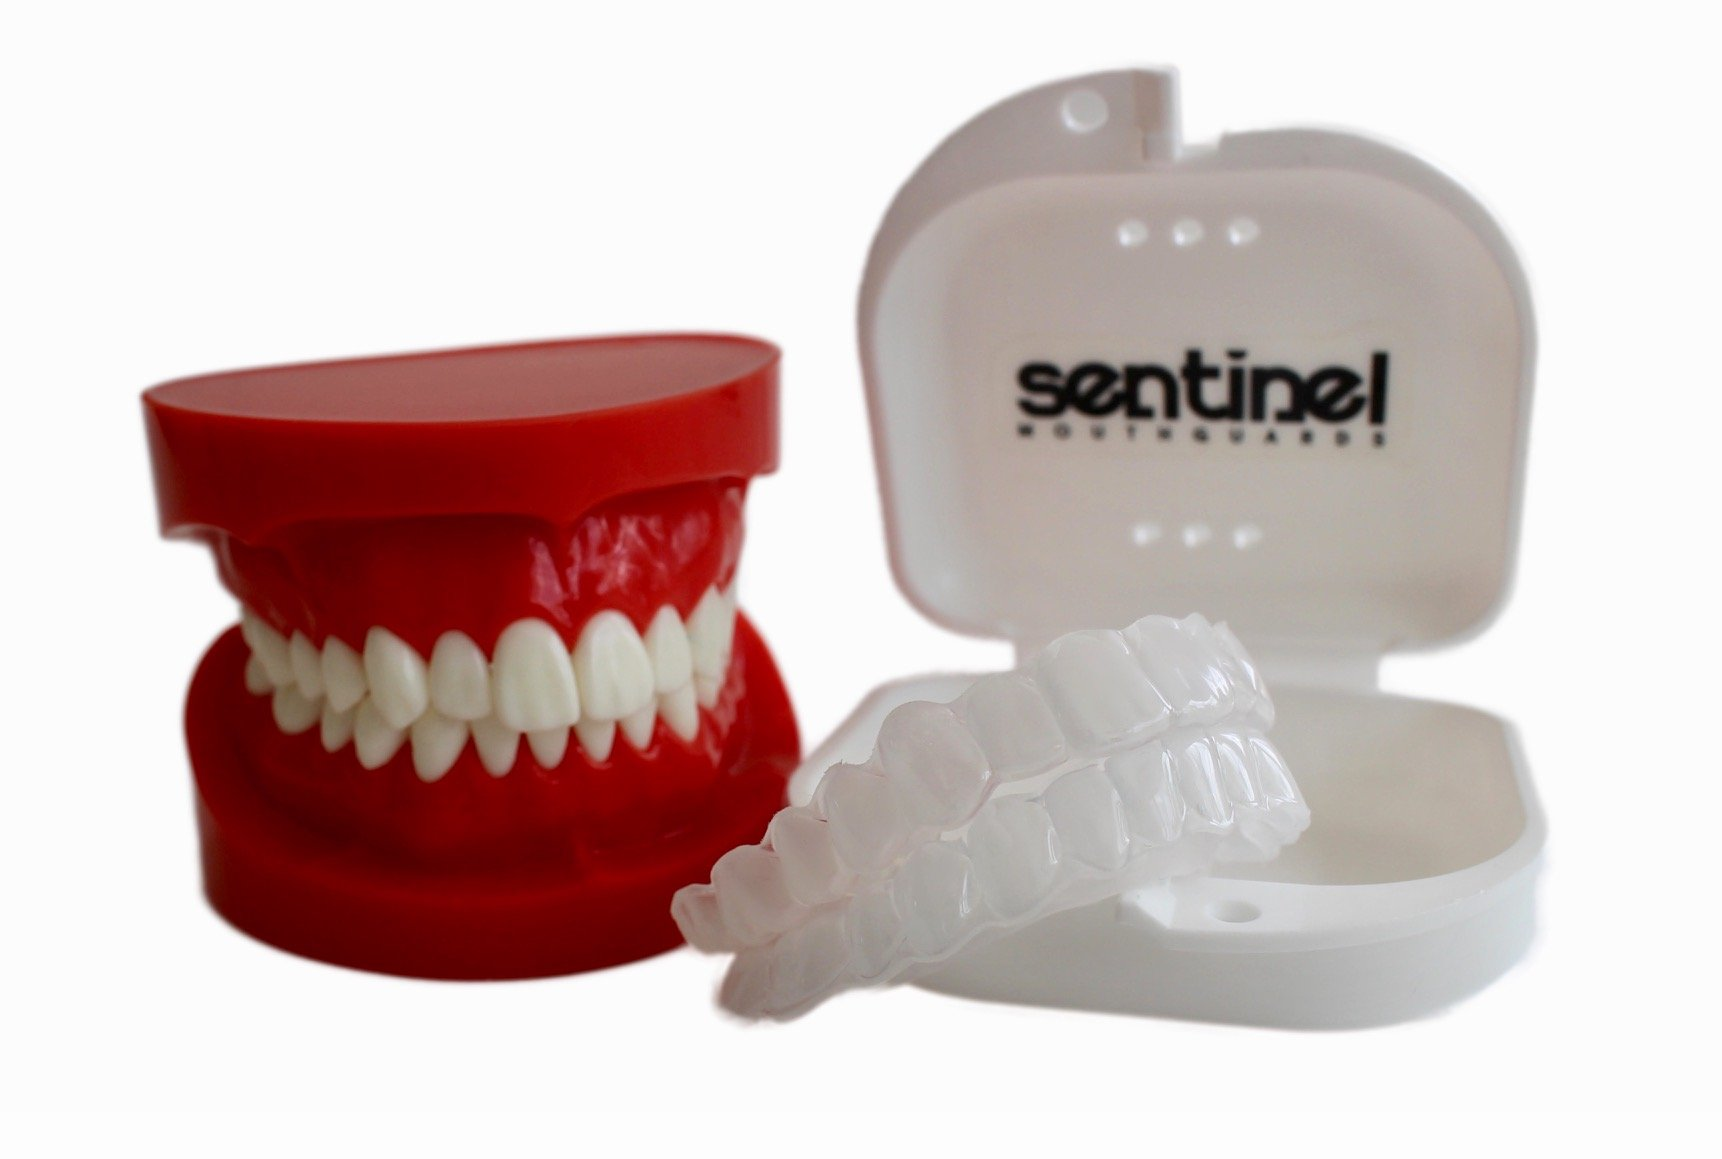 Upper & Lower Soft Dental Night Guards For Nighttime Tongue Biting. Soft Custom Fit Mouthguard To Protect Tongue Damage From Nocturnal Tongue Biting (Youth)